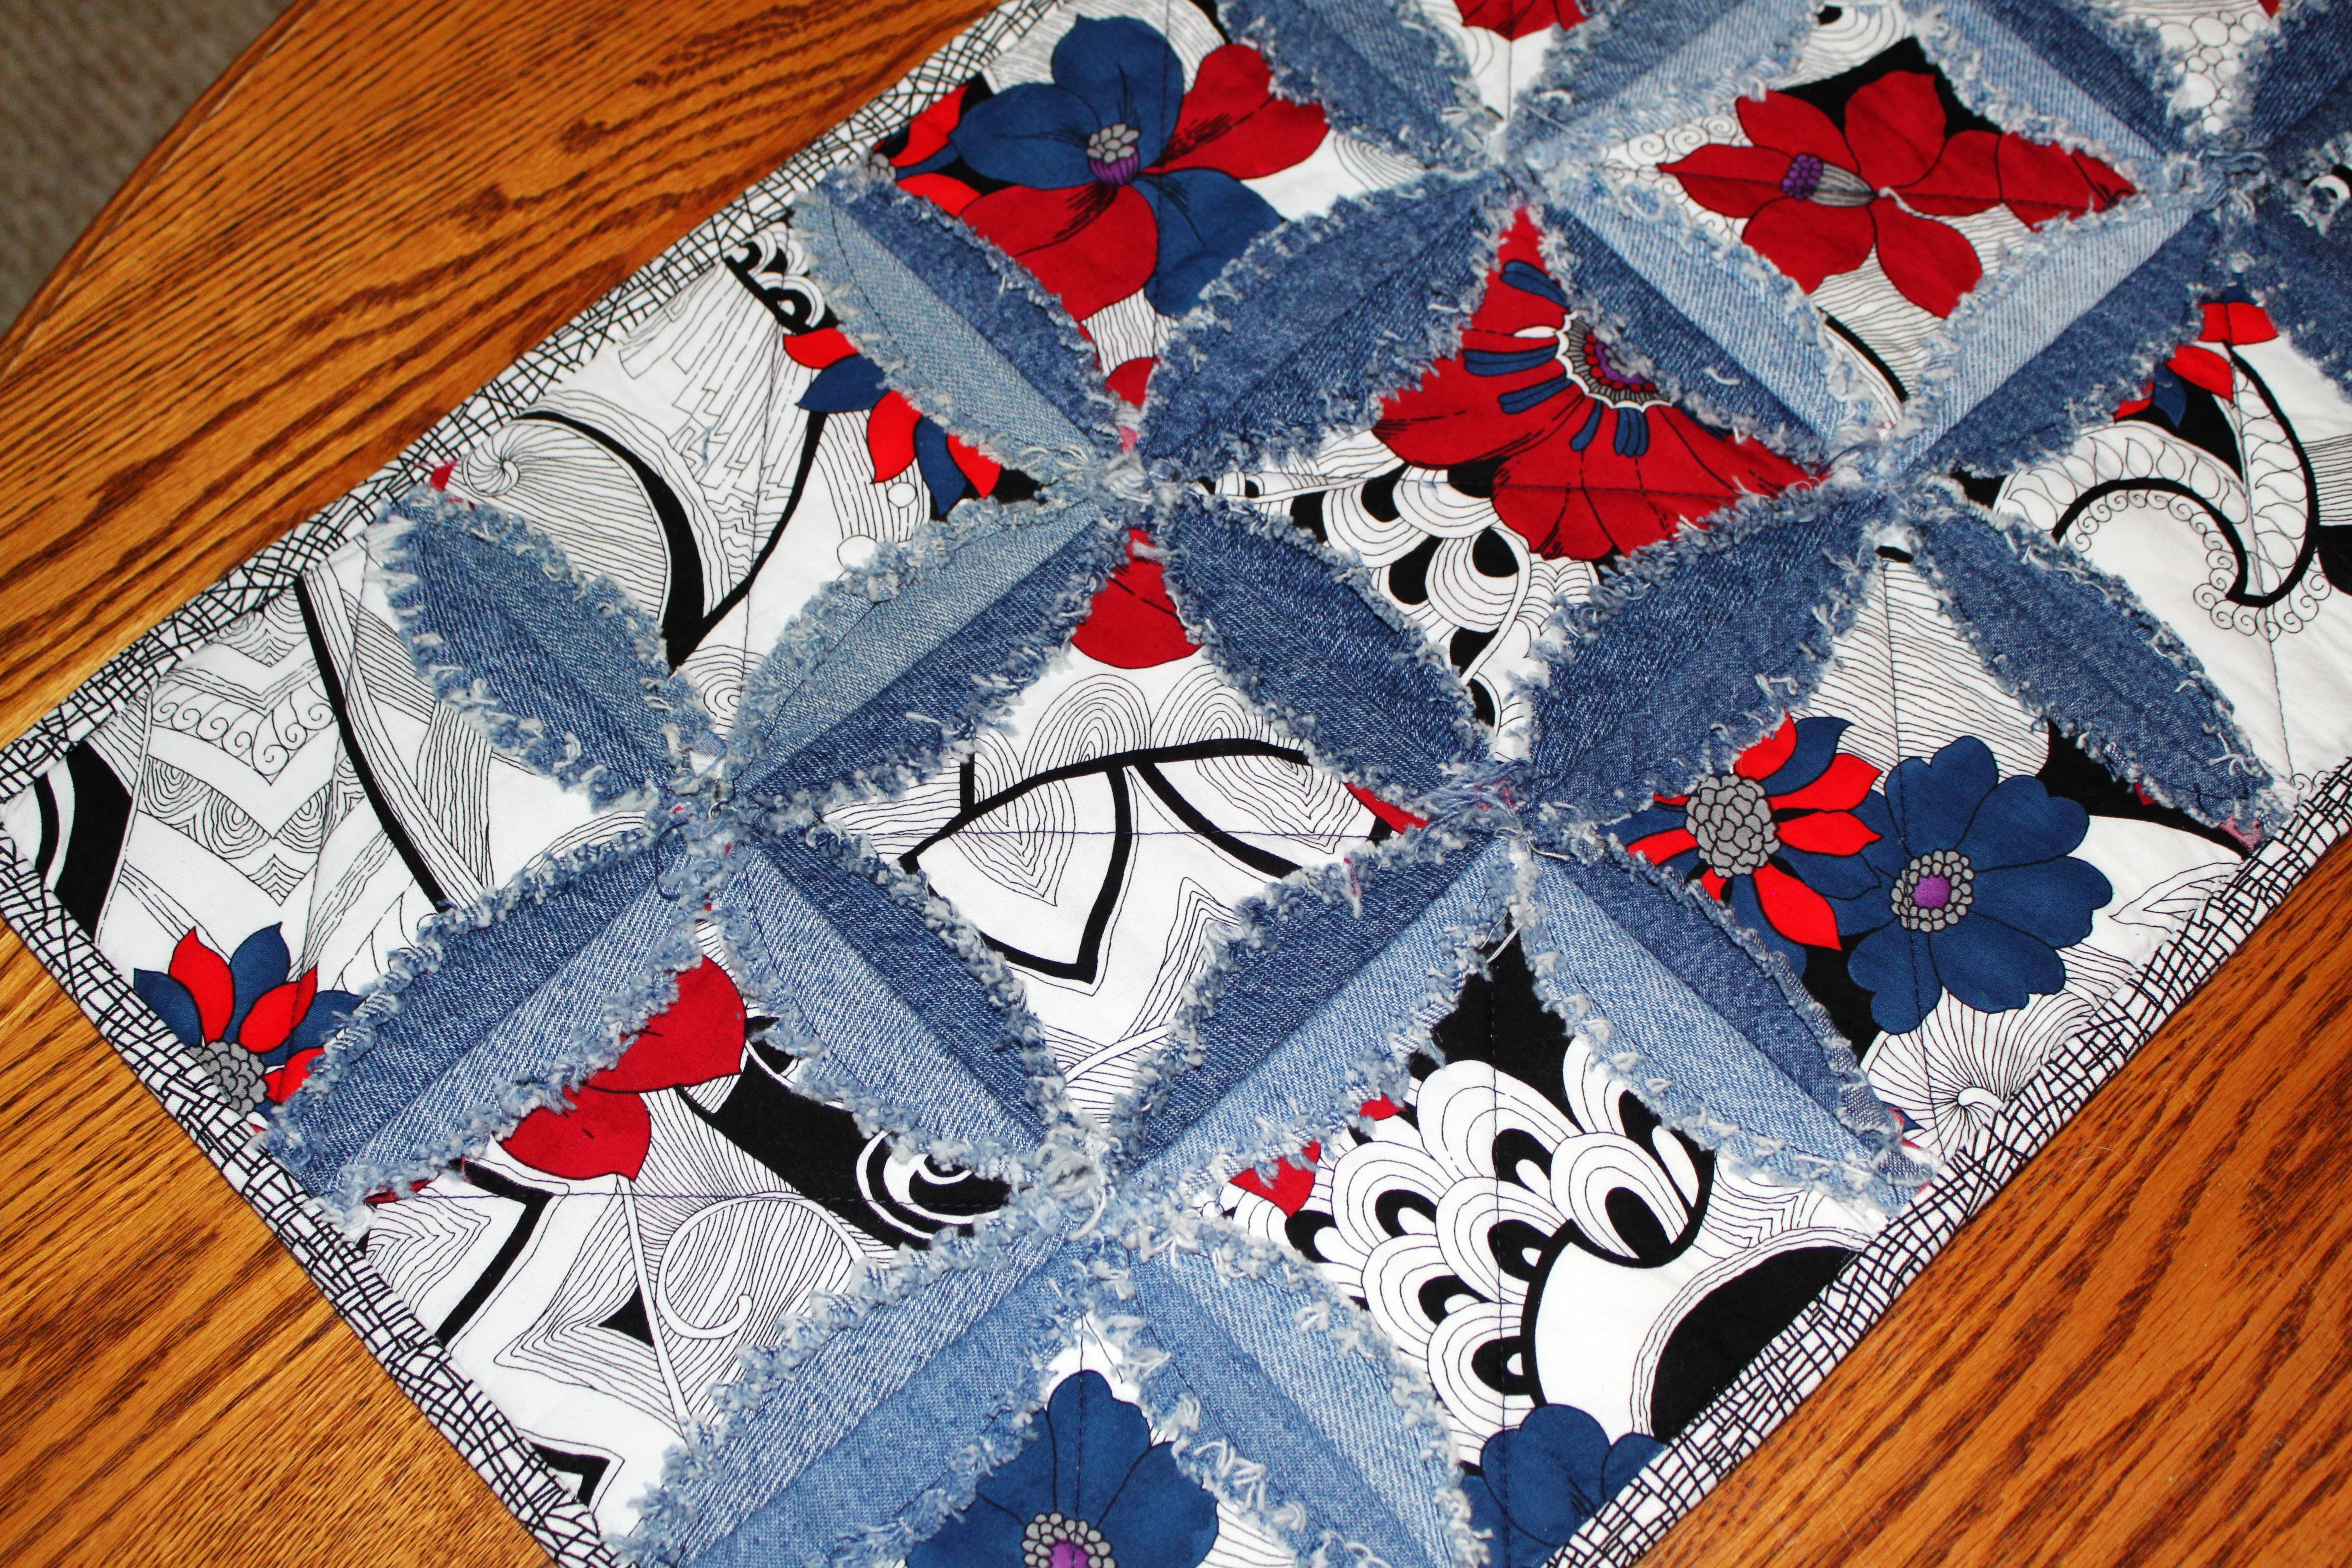 Quilt Pattern Using Focus Fabric : A table runner using a single large scale focus fabric and my denim circle rag quilt pattern ...